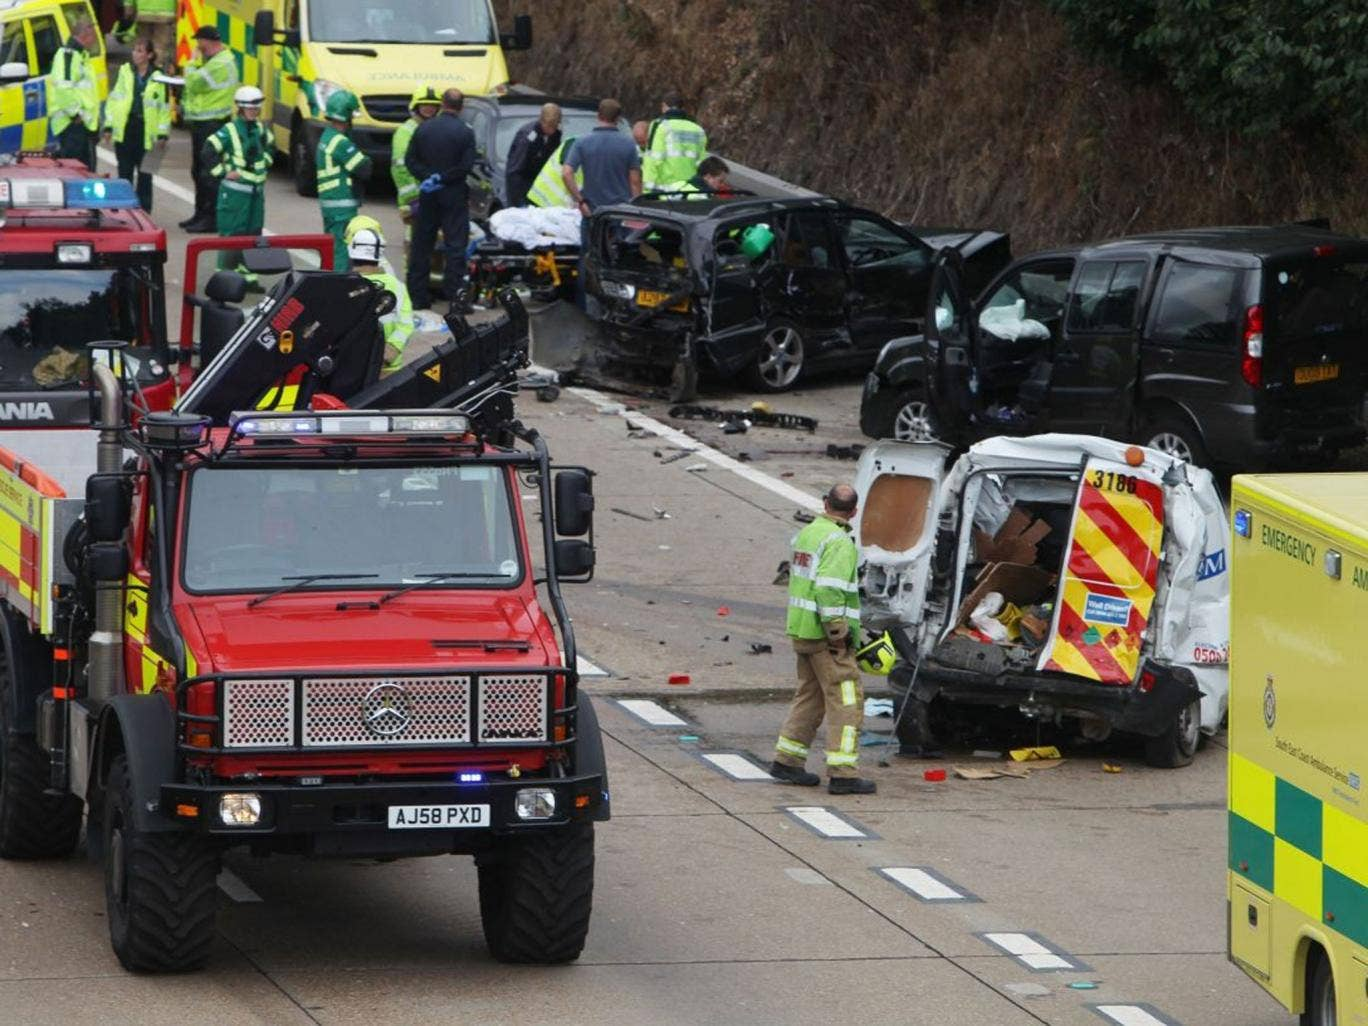 Scene of a road traffic collision on the clockwise section of the M25 Surrey